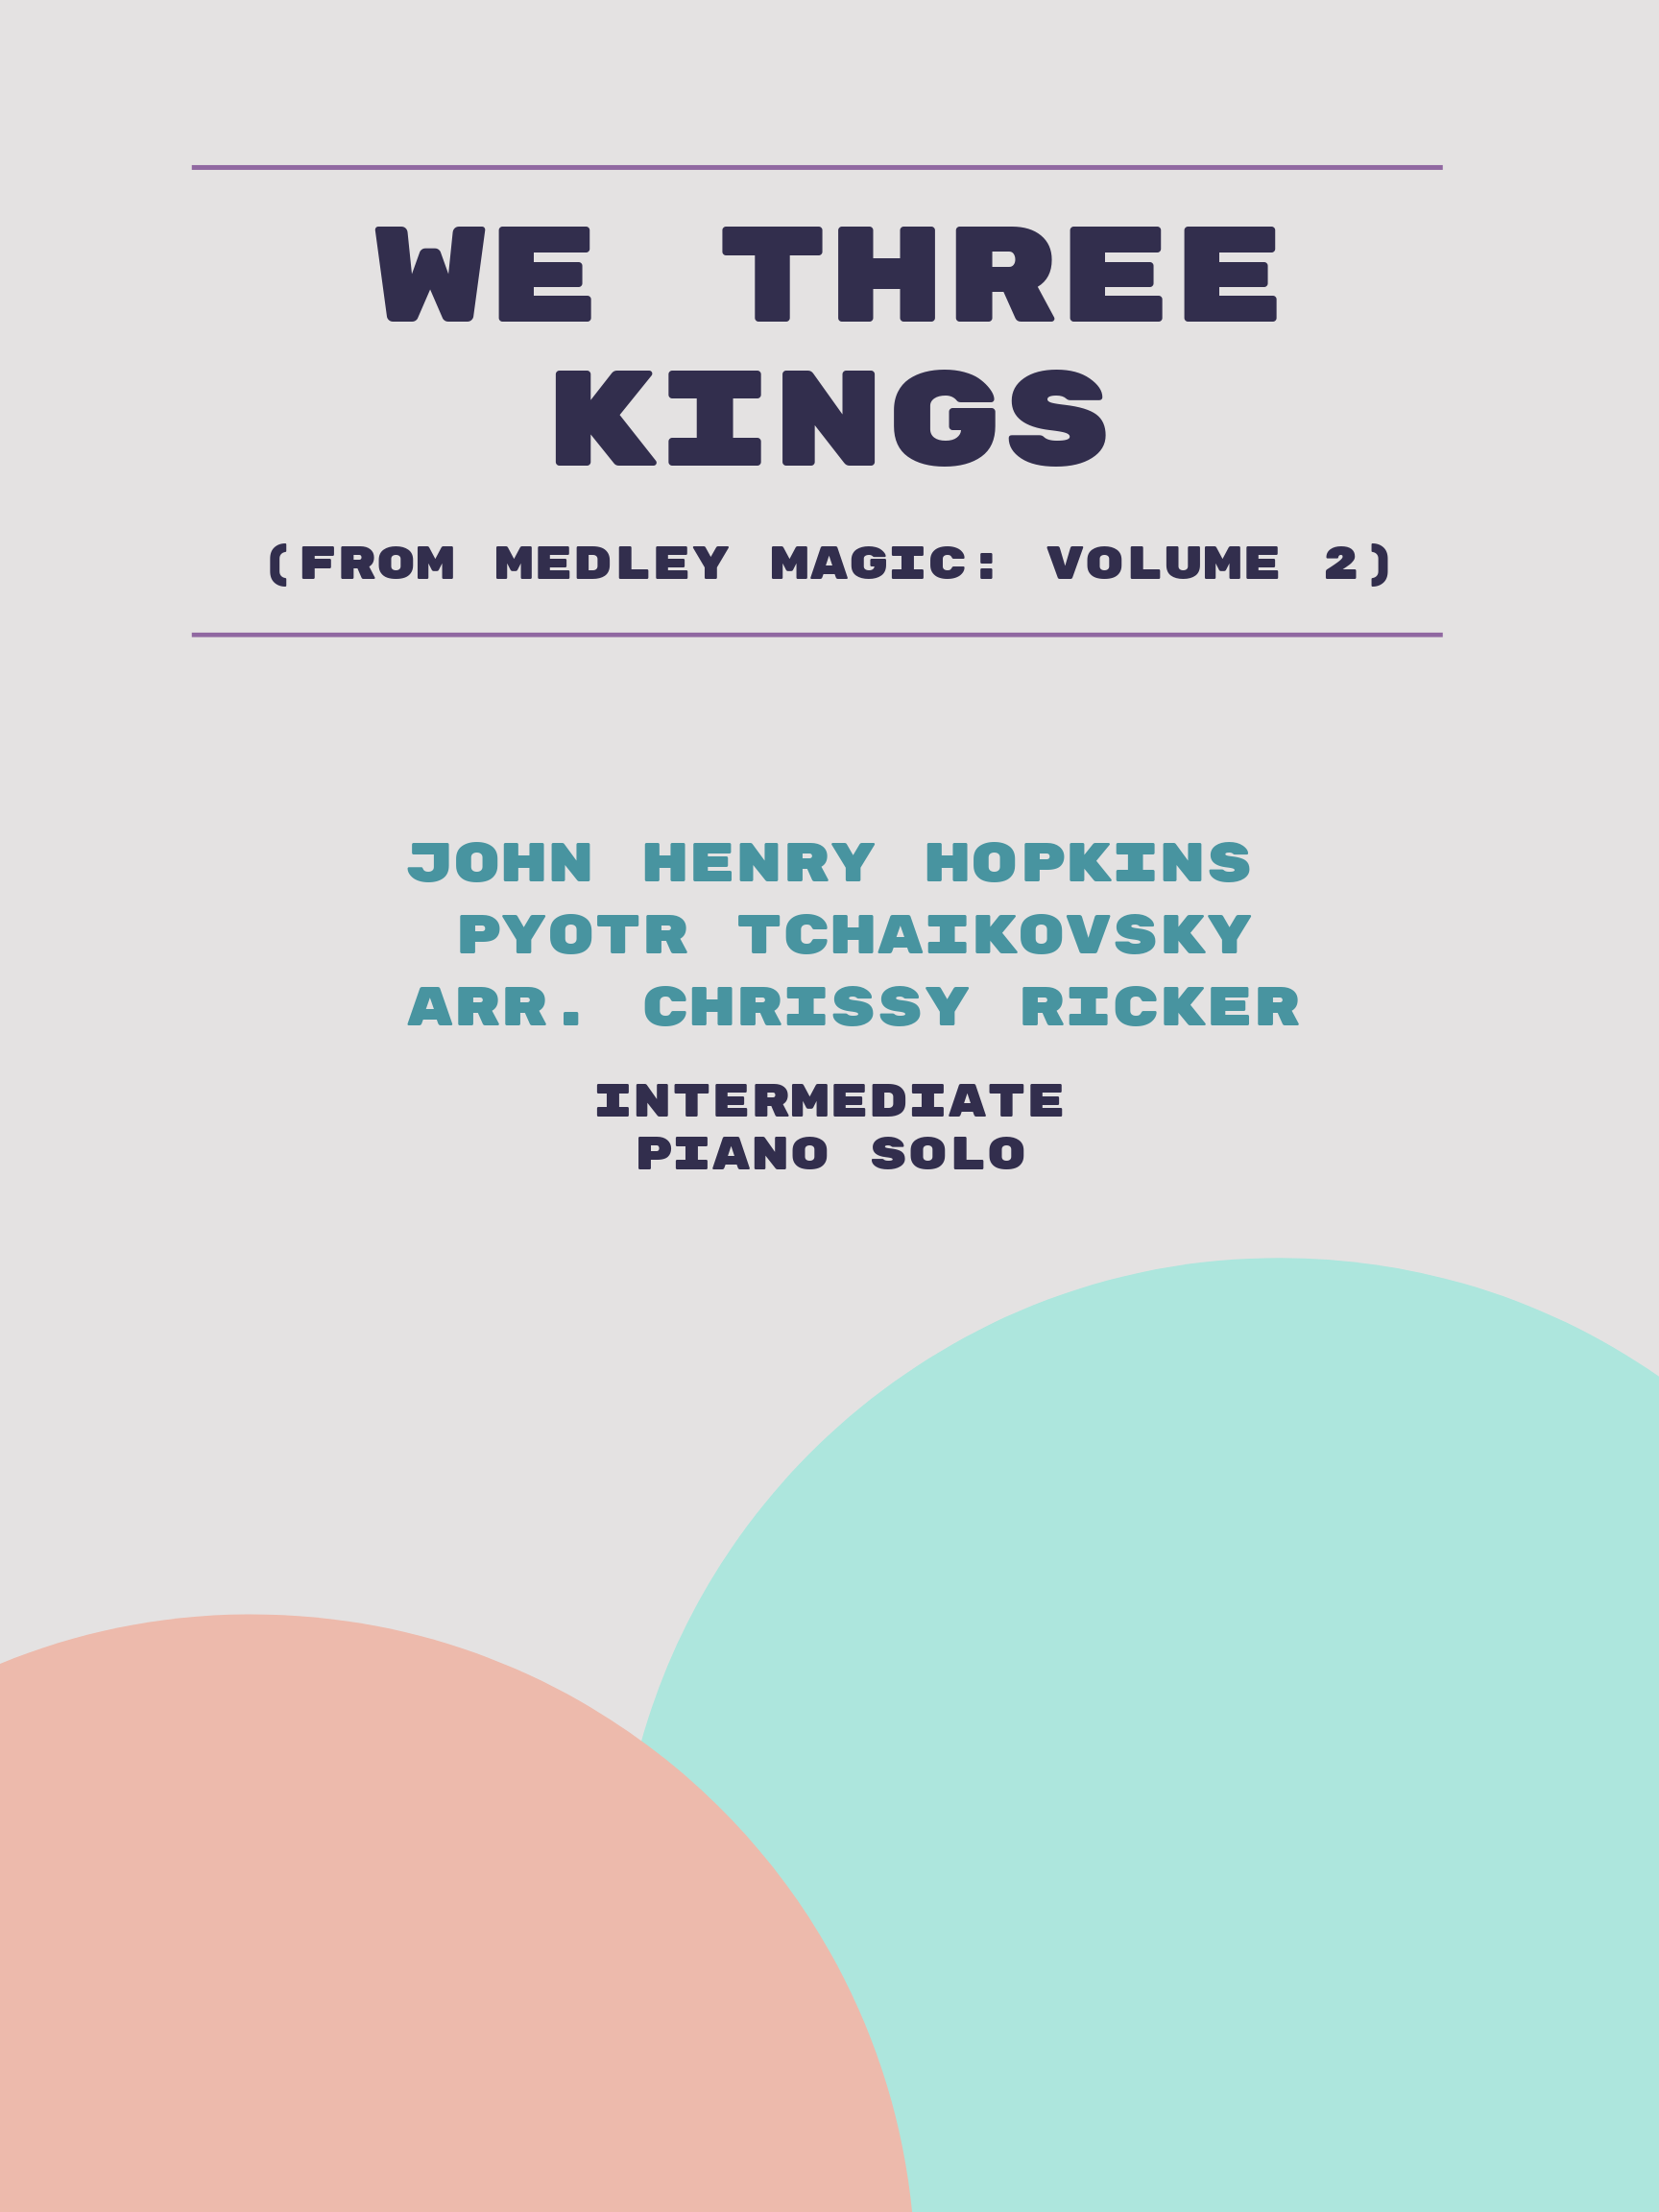 We Three Kings by John Henry Hopkins, Pyotr Tchaikovsky